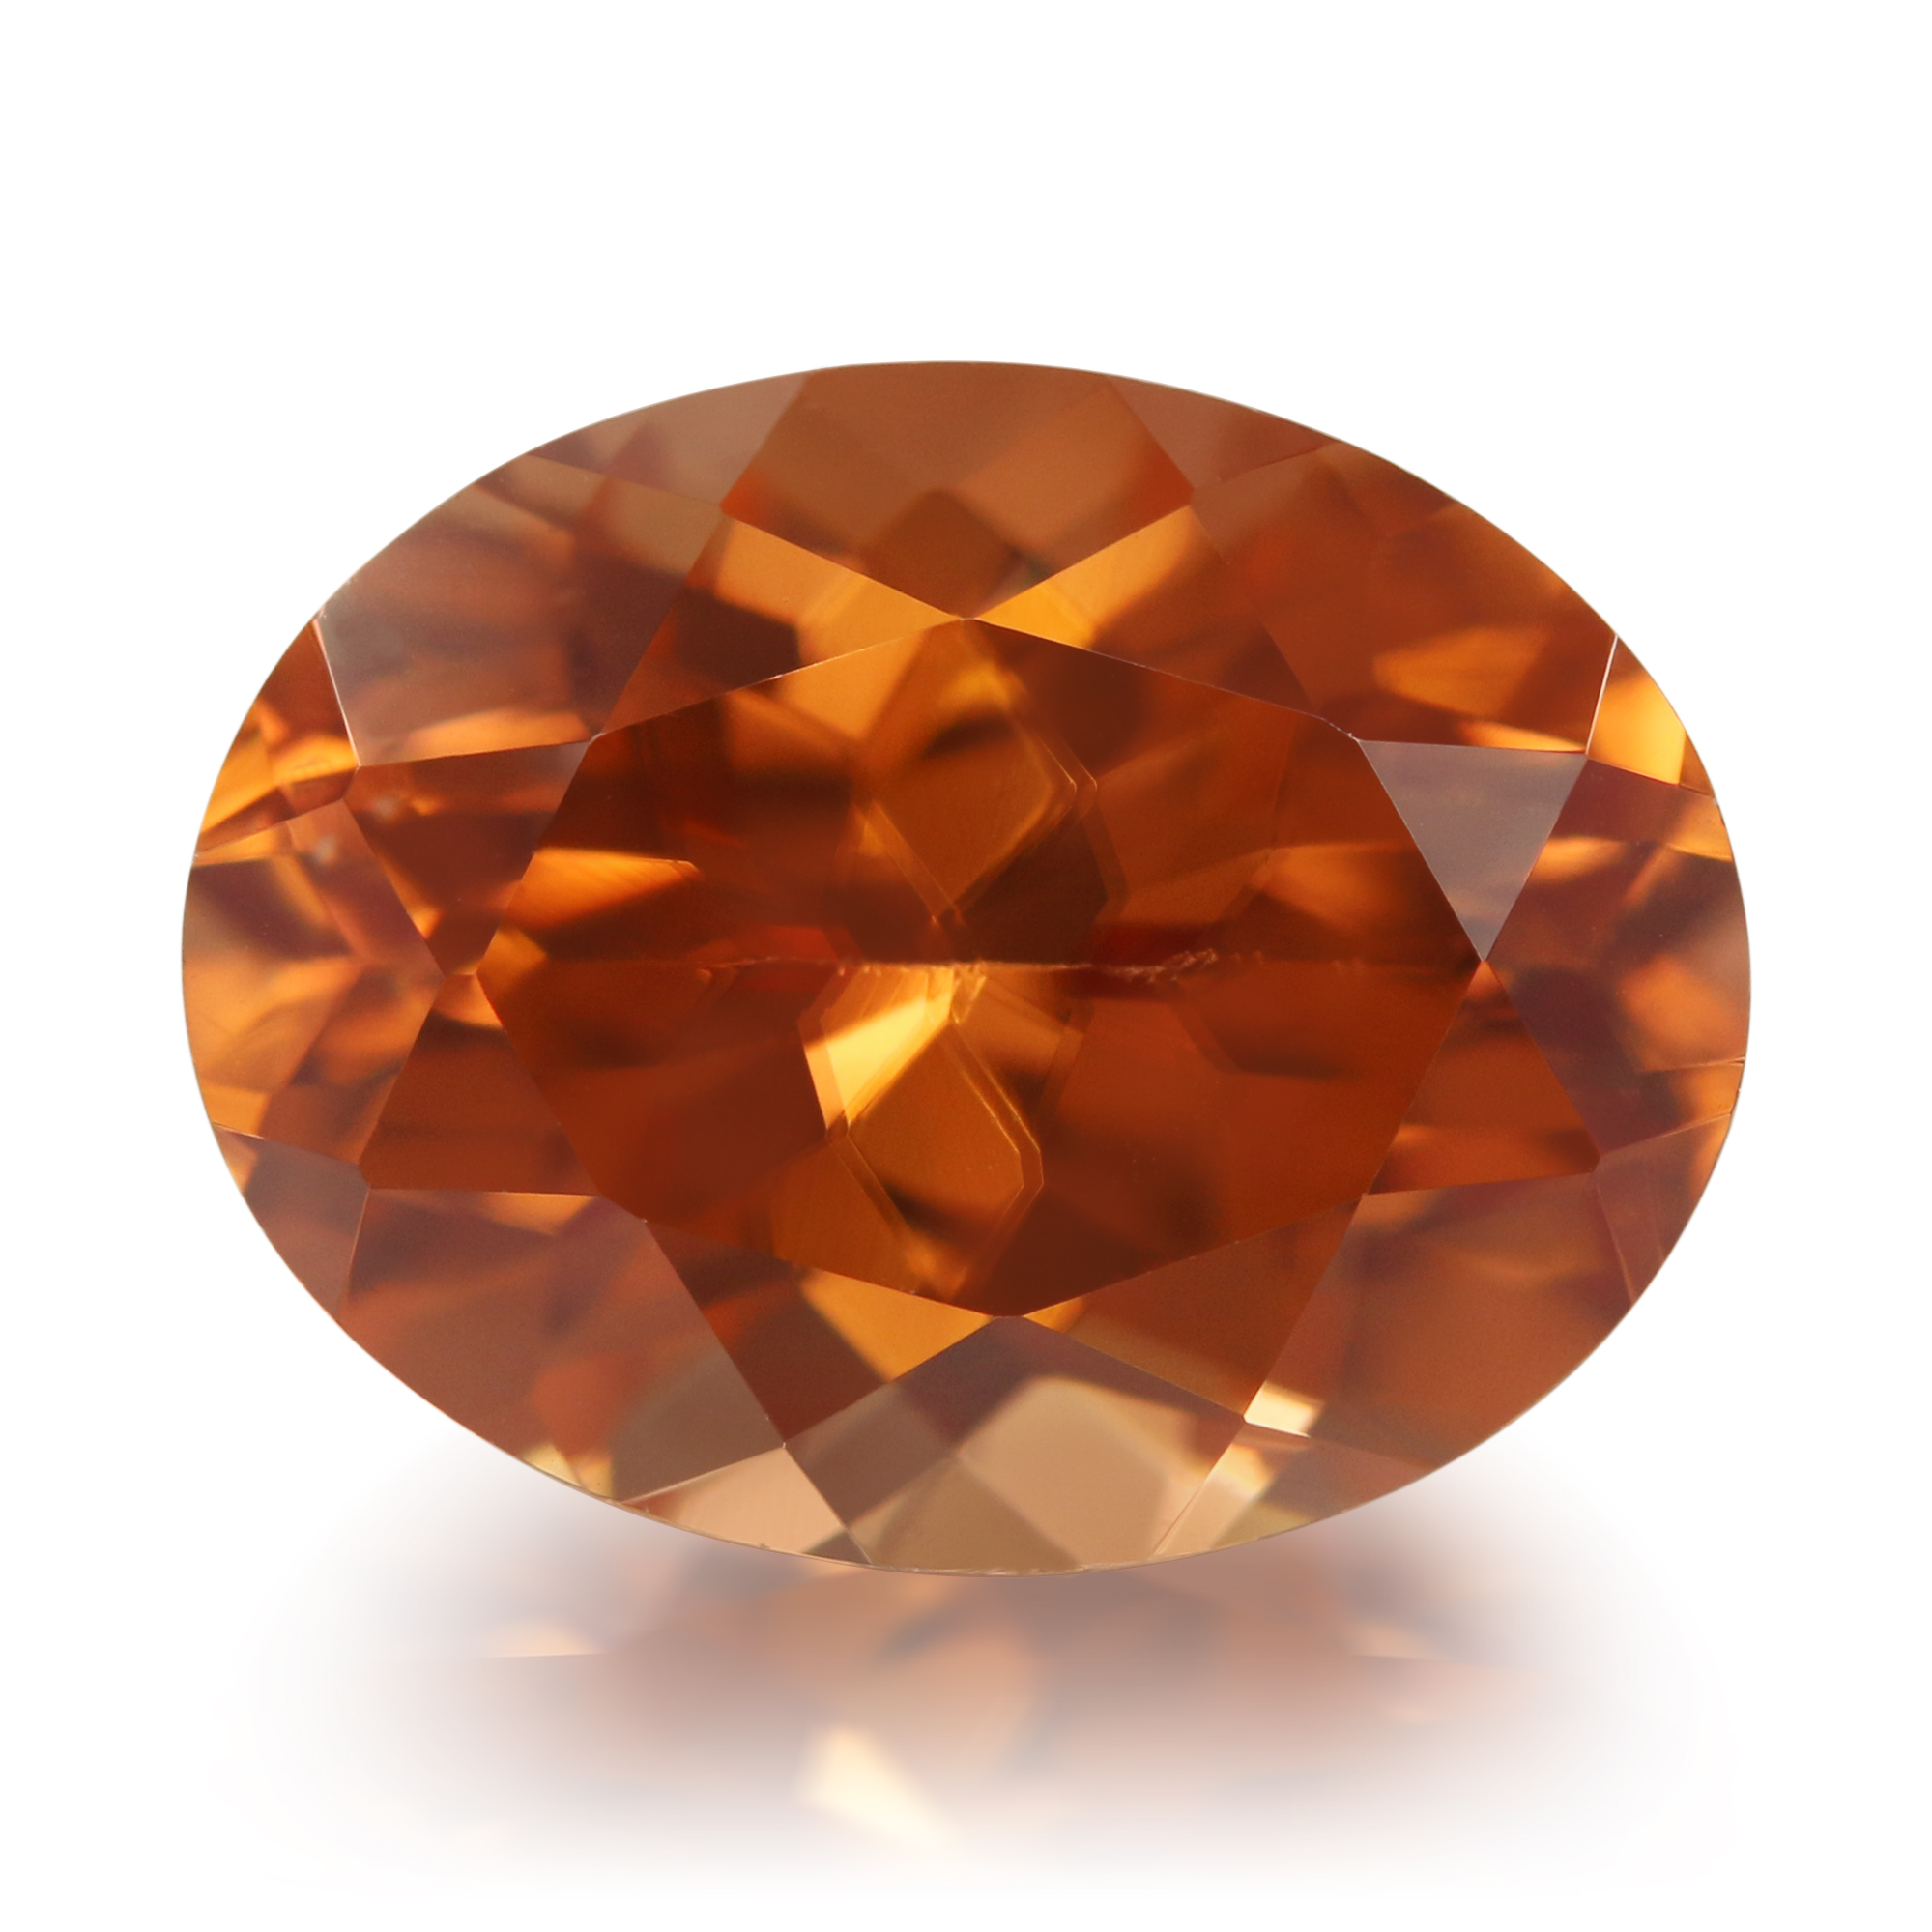 Le Zircon orange de Mashewa